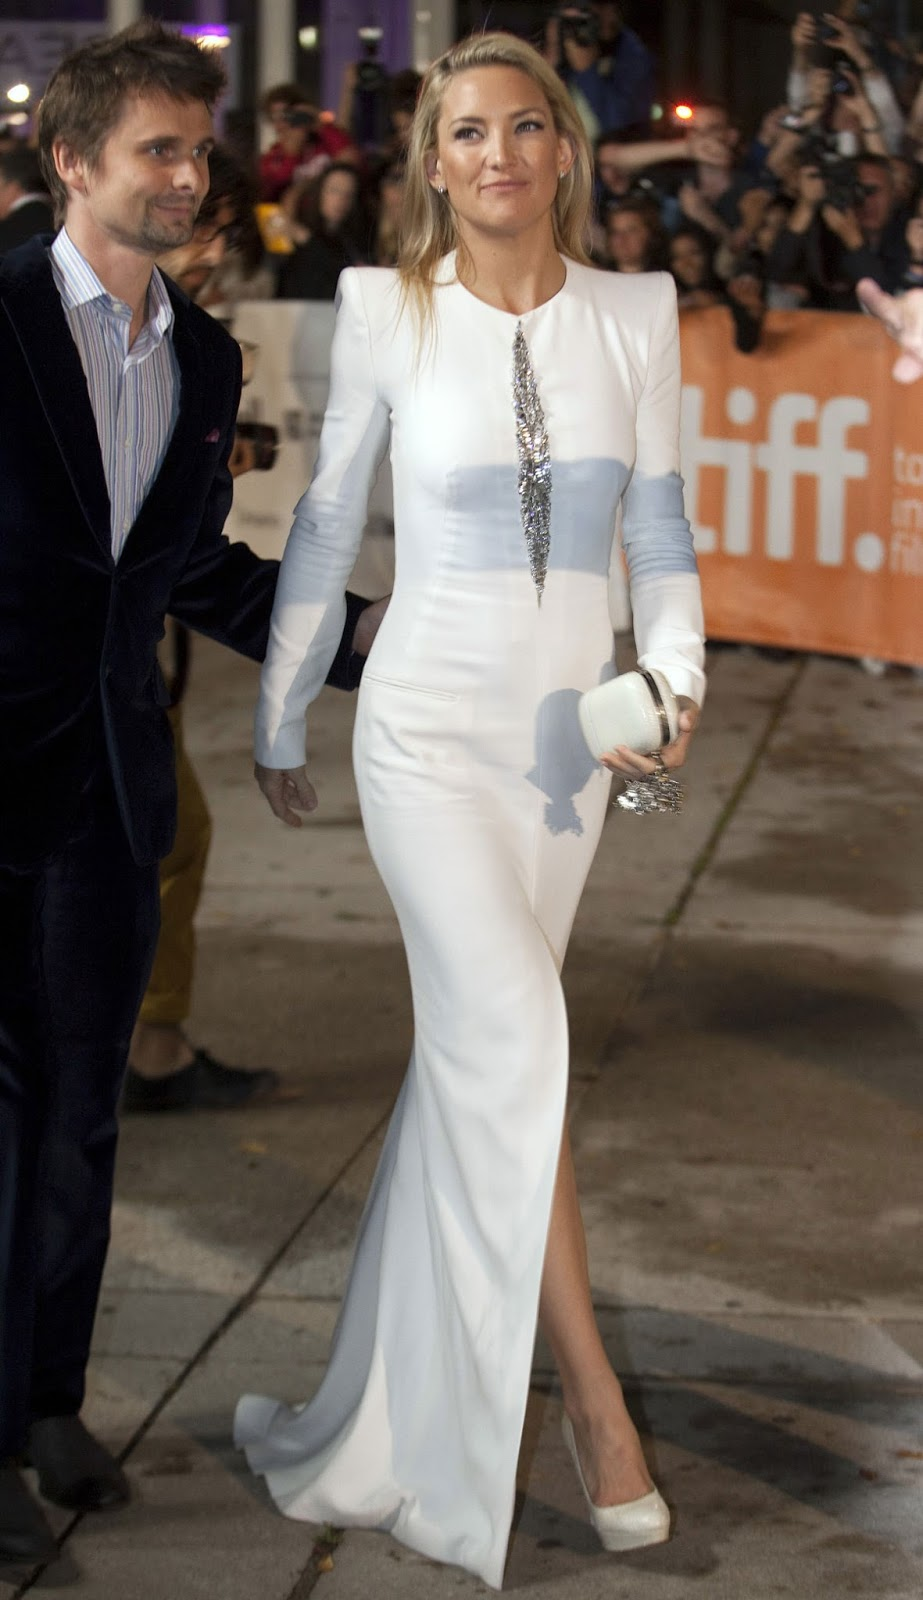 HQ Photos of Kate Hudson in white dress At The Reluctant Fundamentalist Premiere At Toronto Film Festival